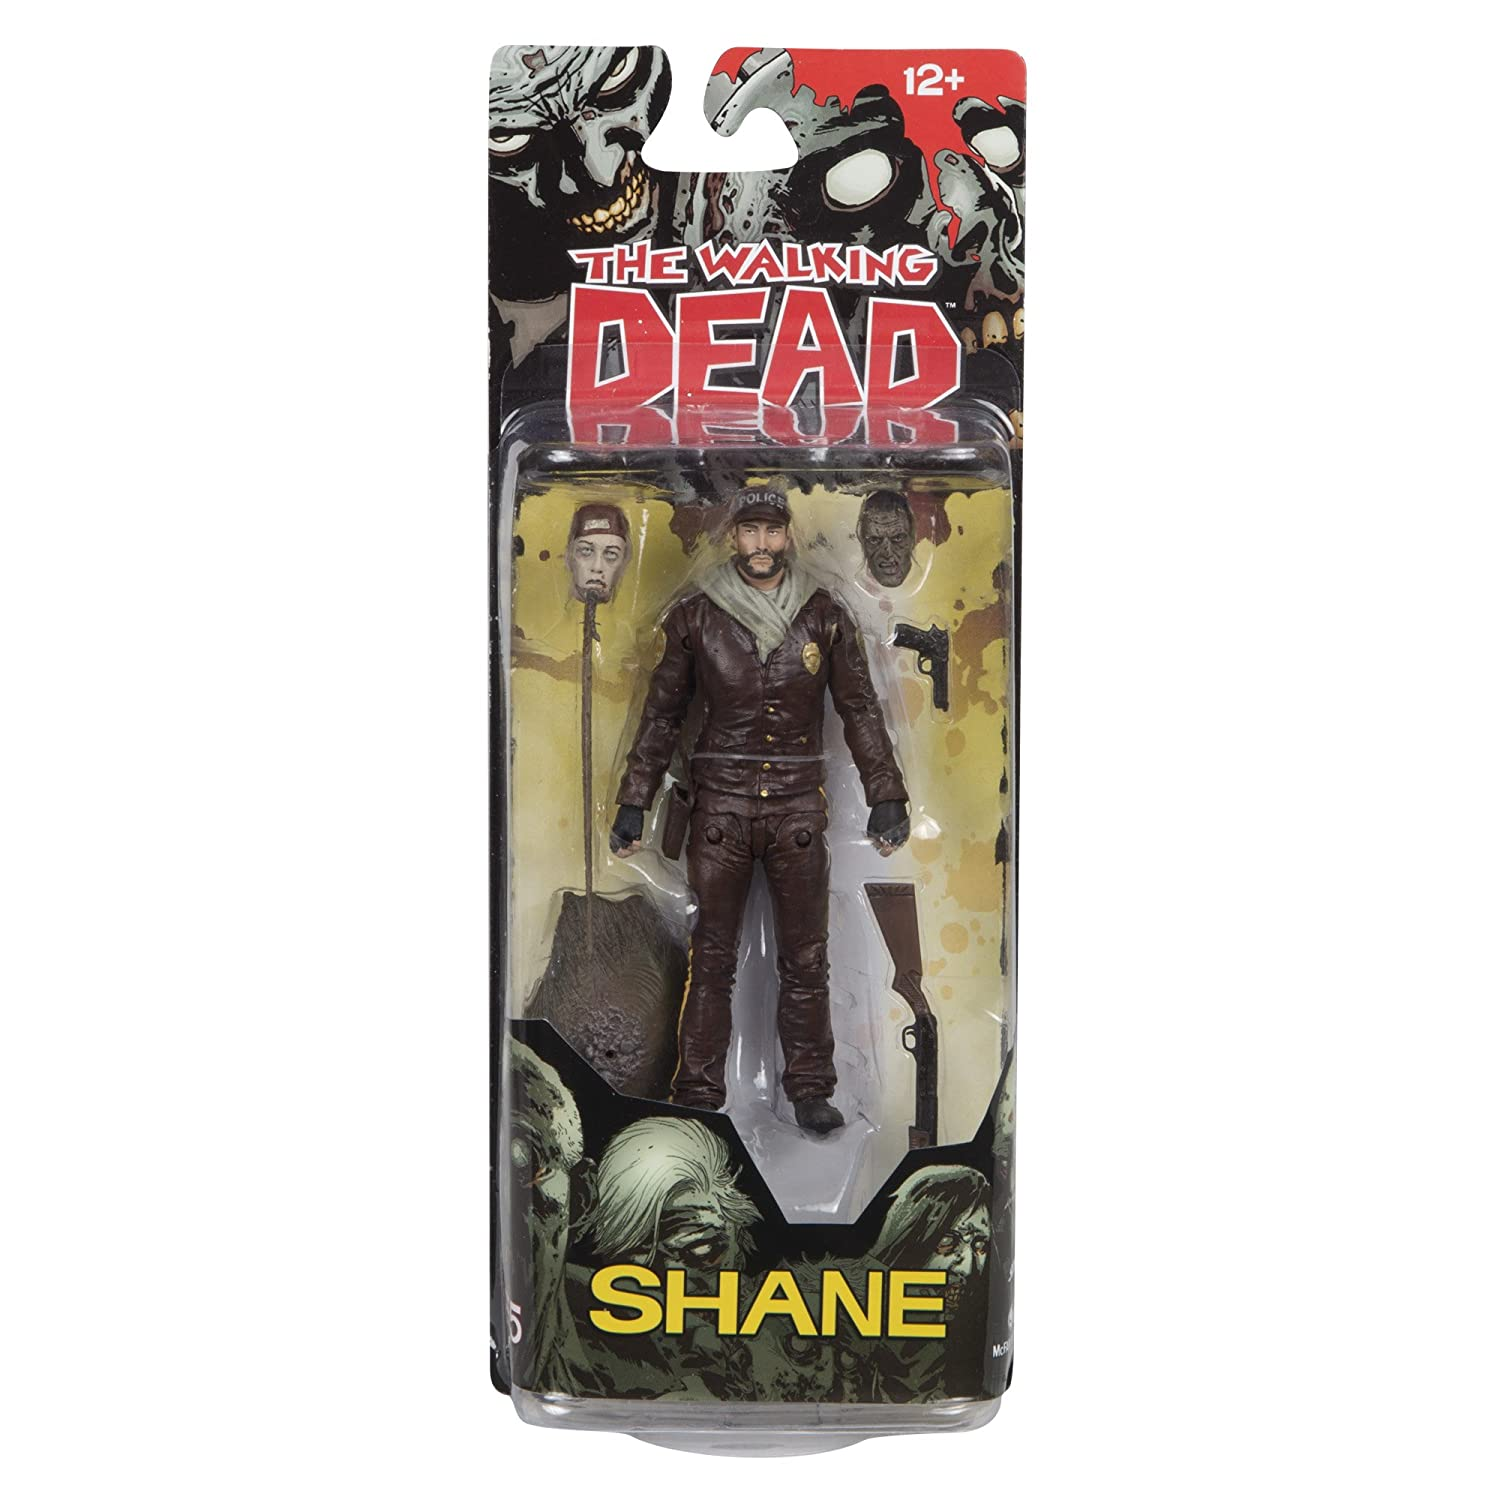 McFarlane Toys The Walking Dead Comic Series 5 Shane Action Figure 14643-1